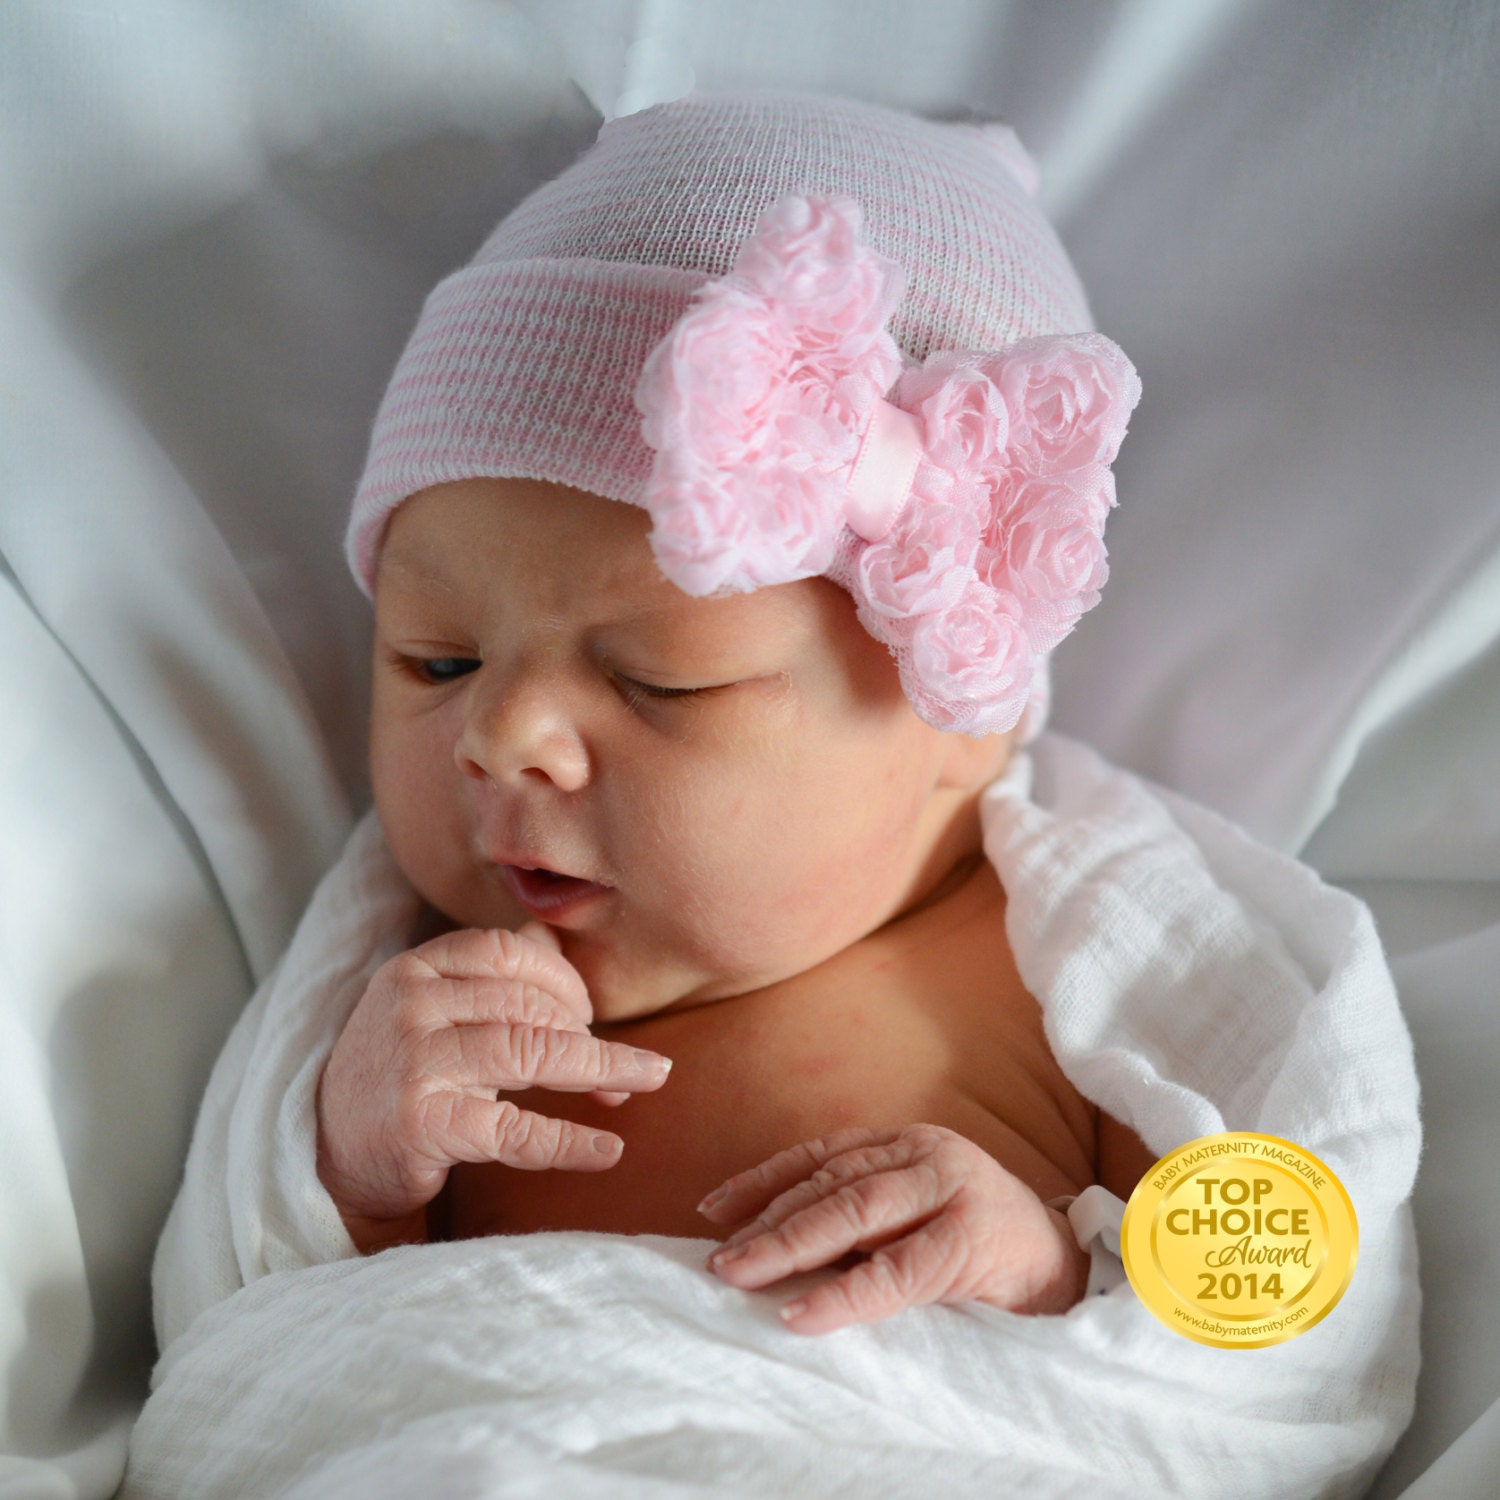 Shop baby girl hats & beanies at nakedprogrammzce.cf Save on cute bucket hats, sunhats and beanies for baby girls from a trusted name in children's apparel.